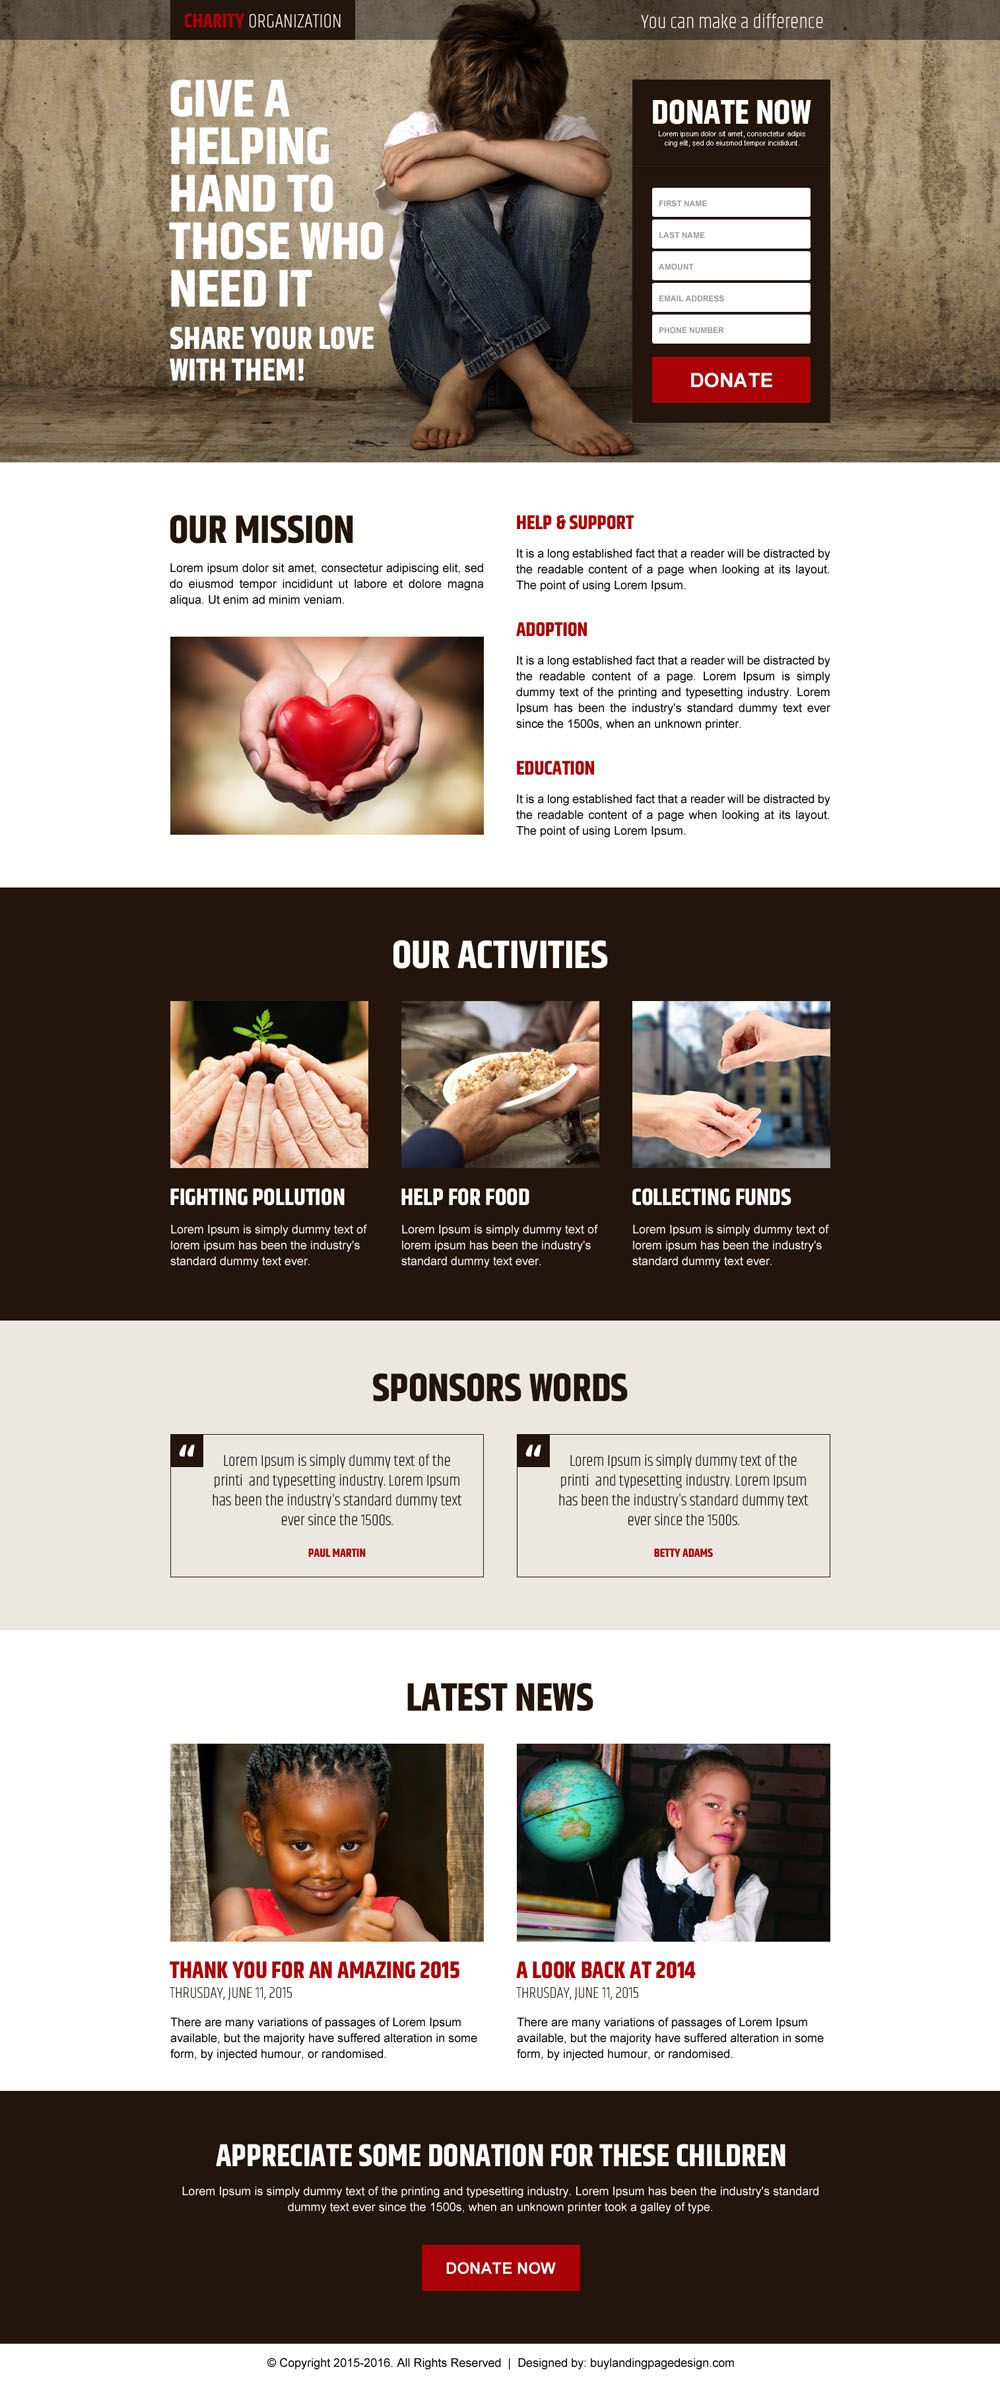 charity organization landing page design templates to capture leads